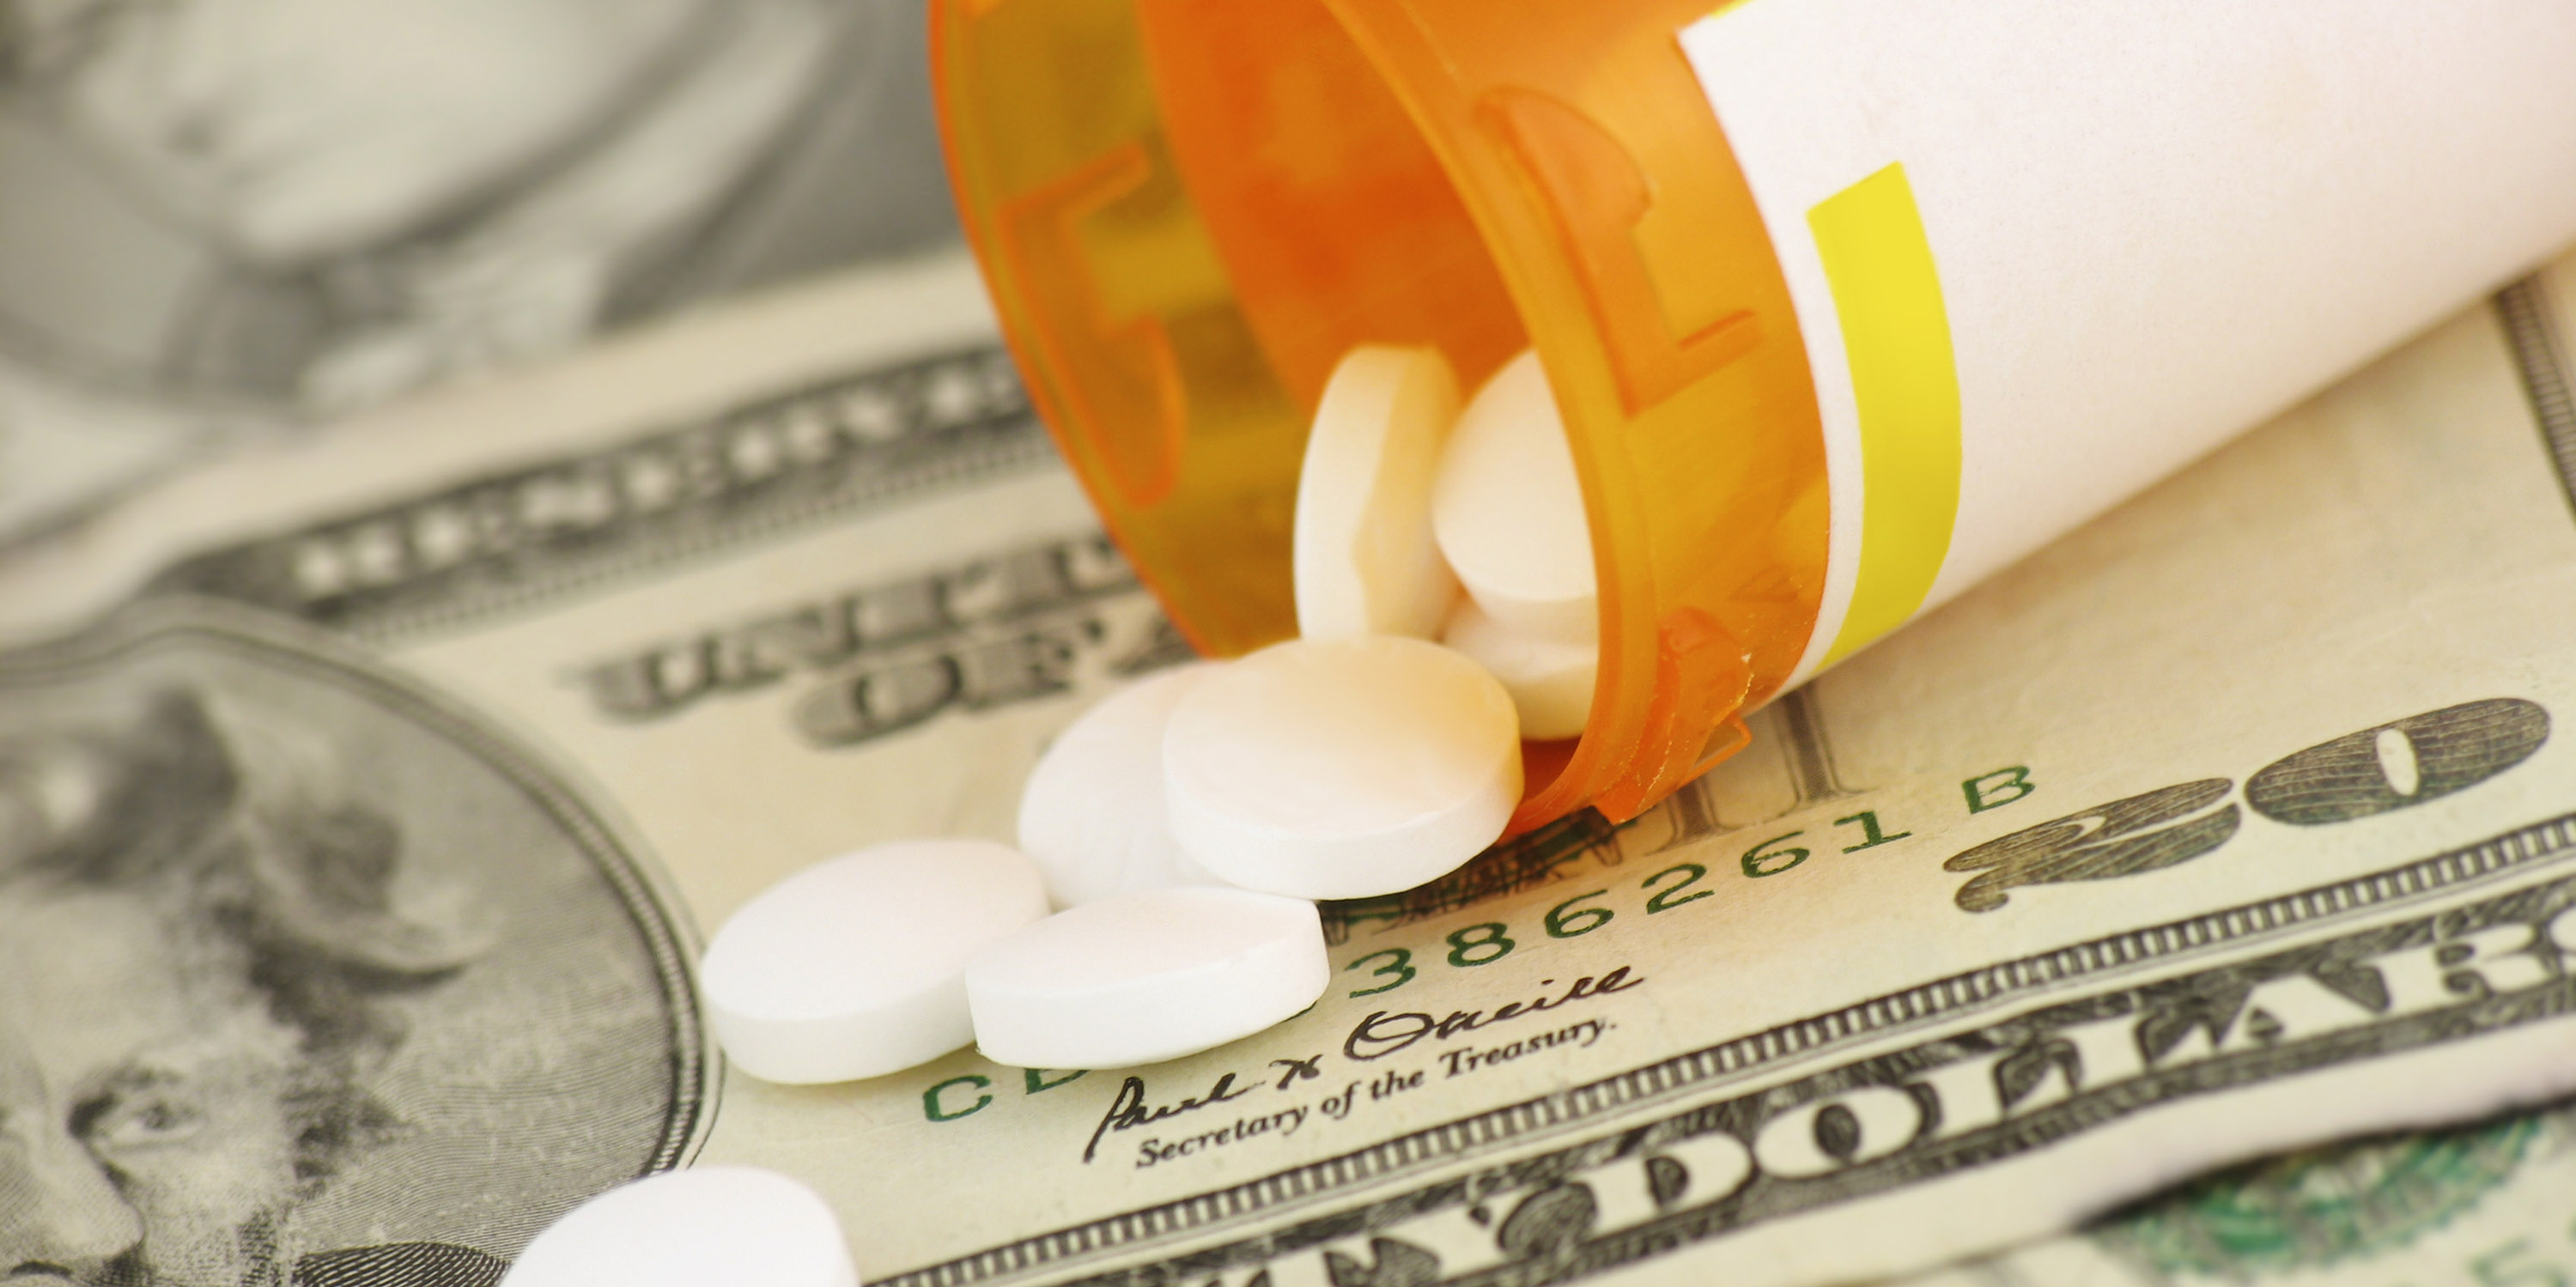 President Trump's Executive Orders on Drug Pricing